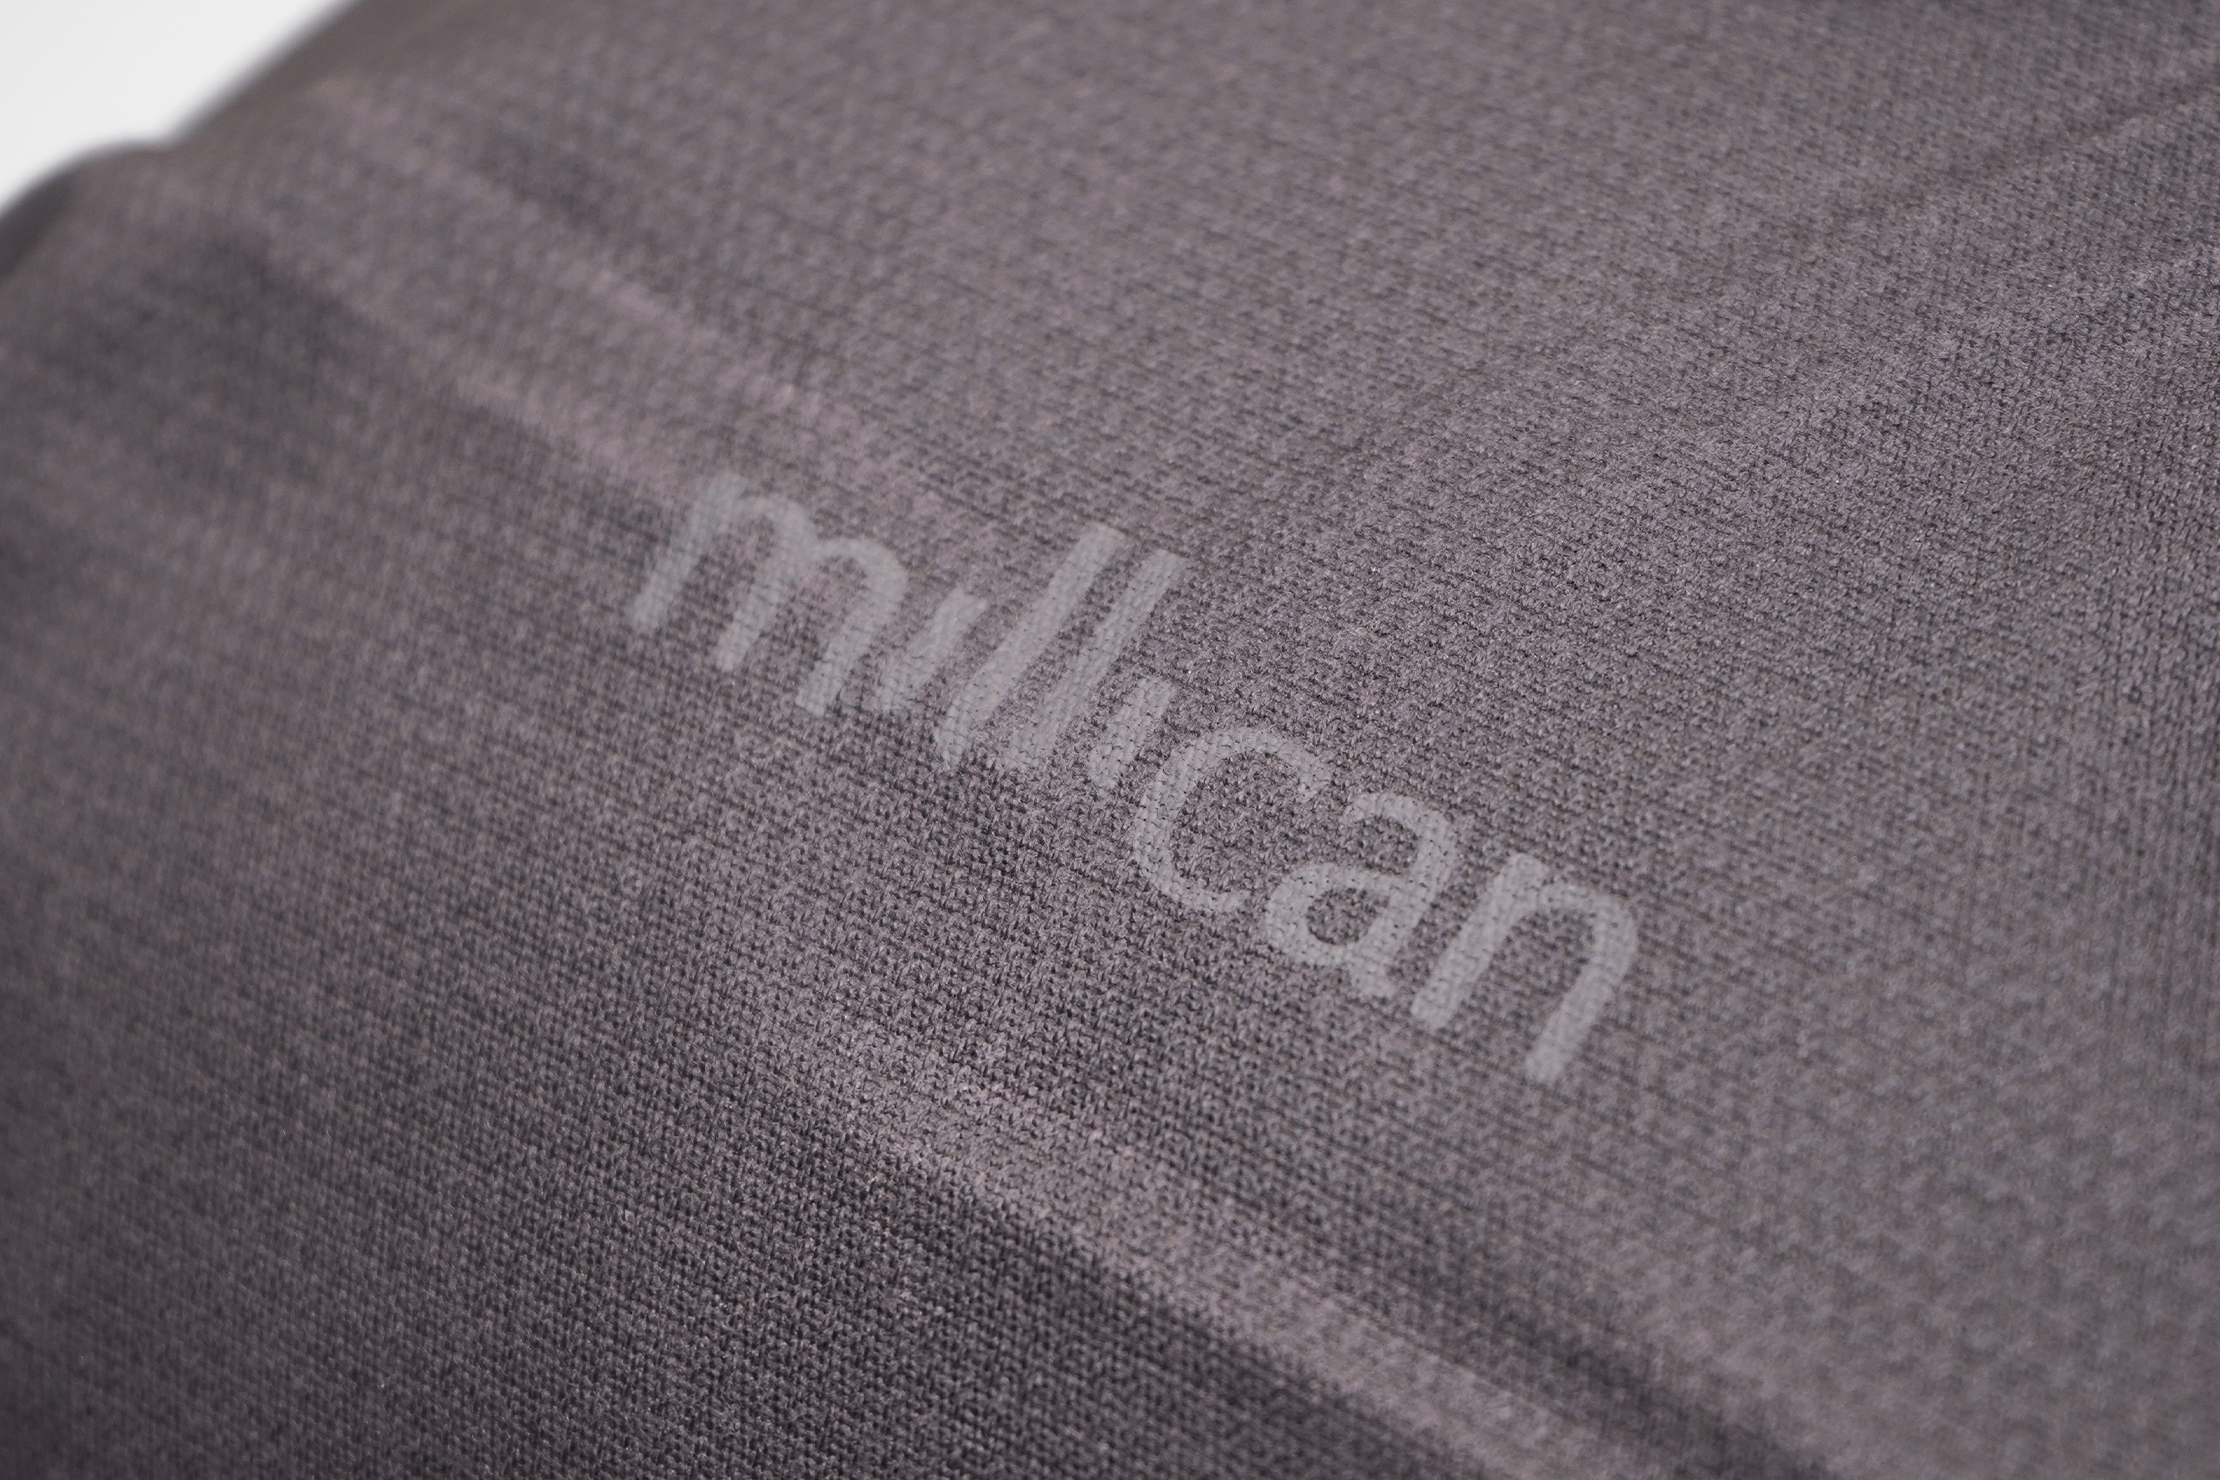 Millican Smith Roll Pack 18L   Subtle branding to keep things minimal